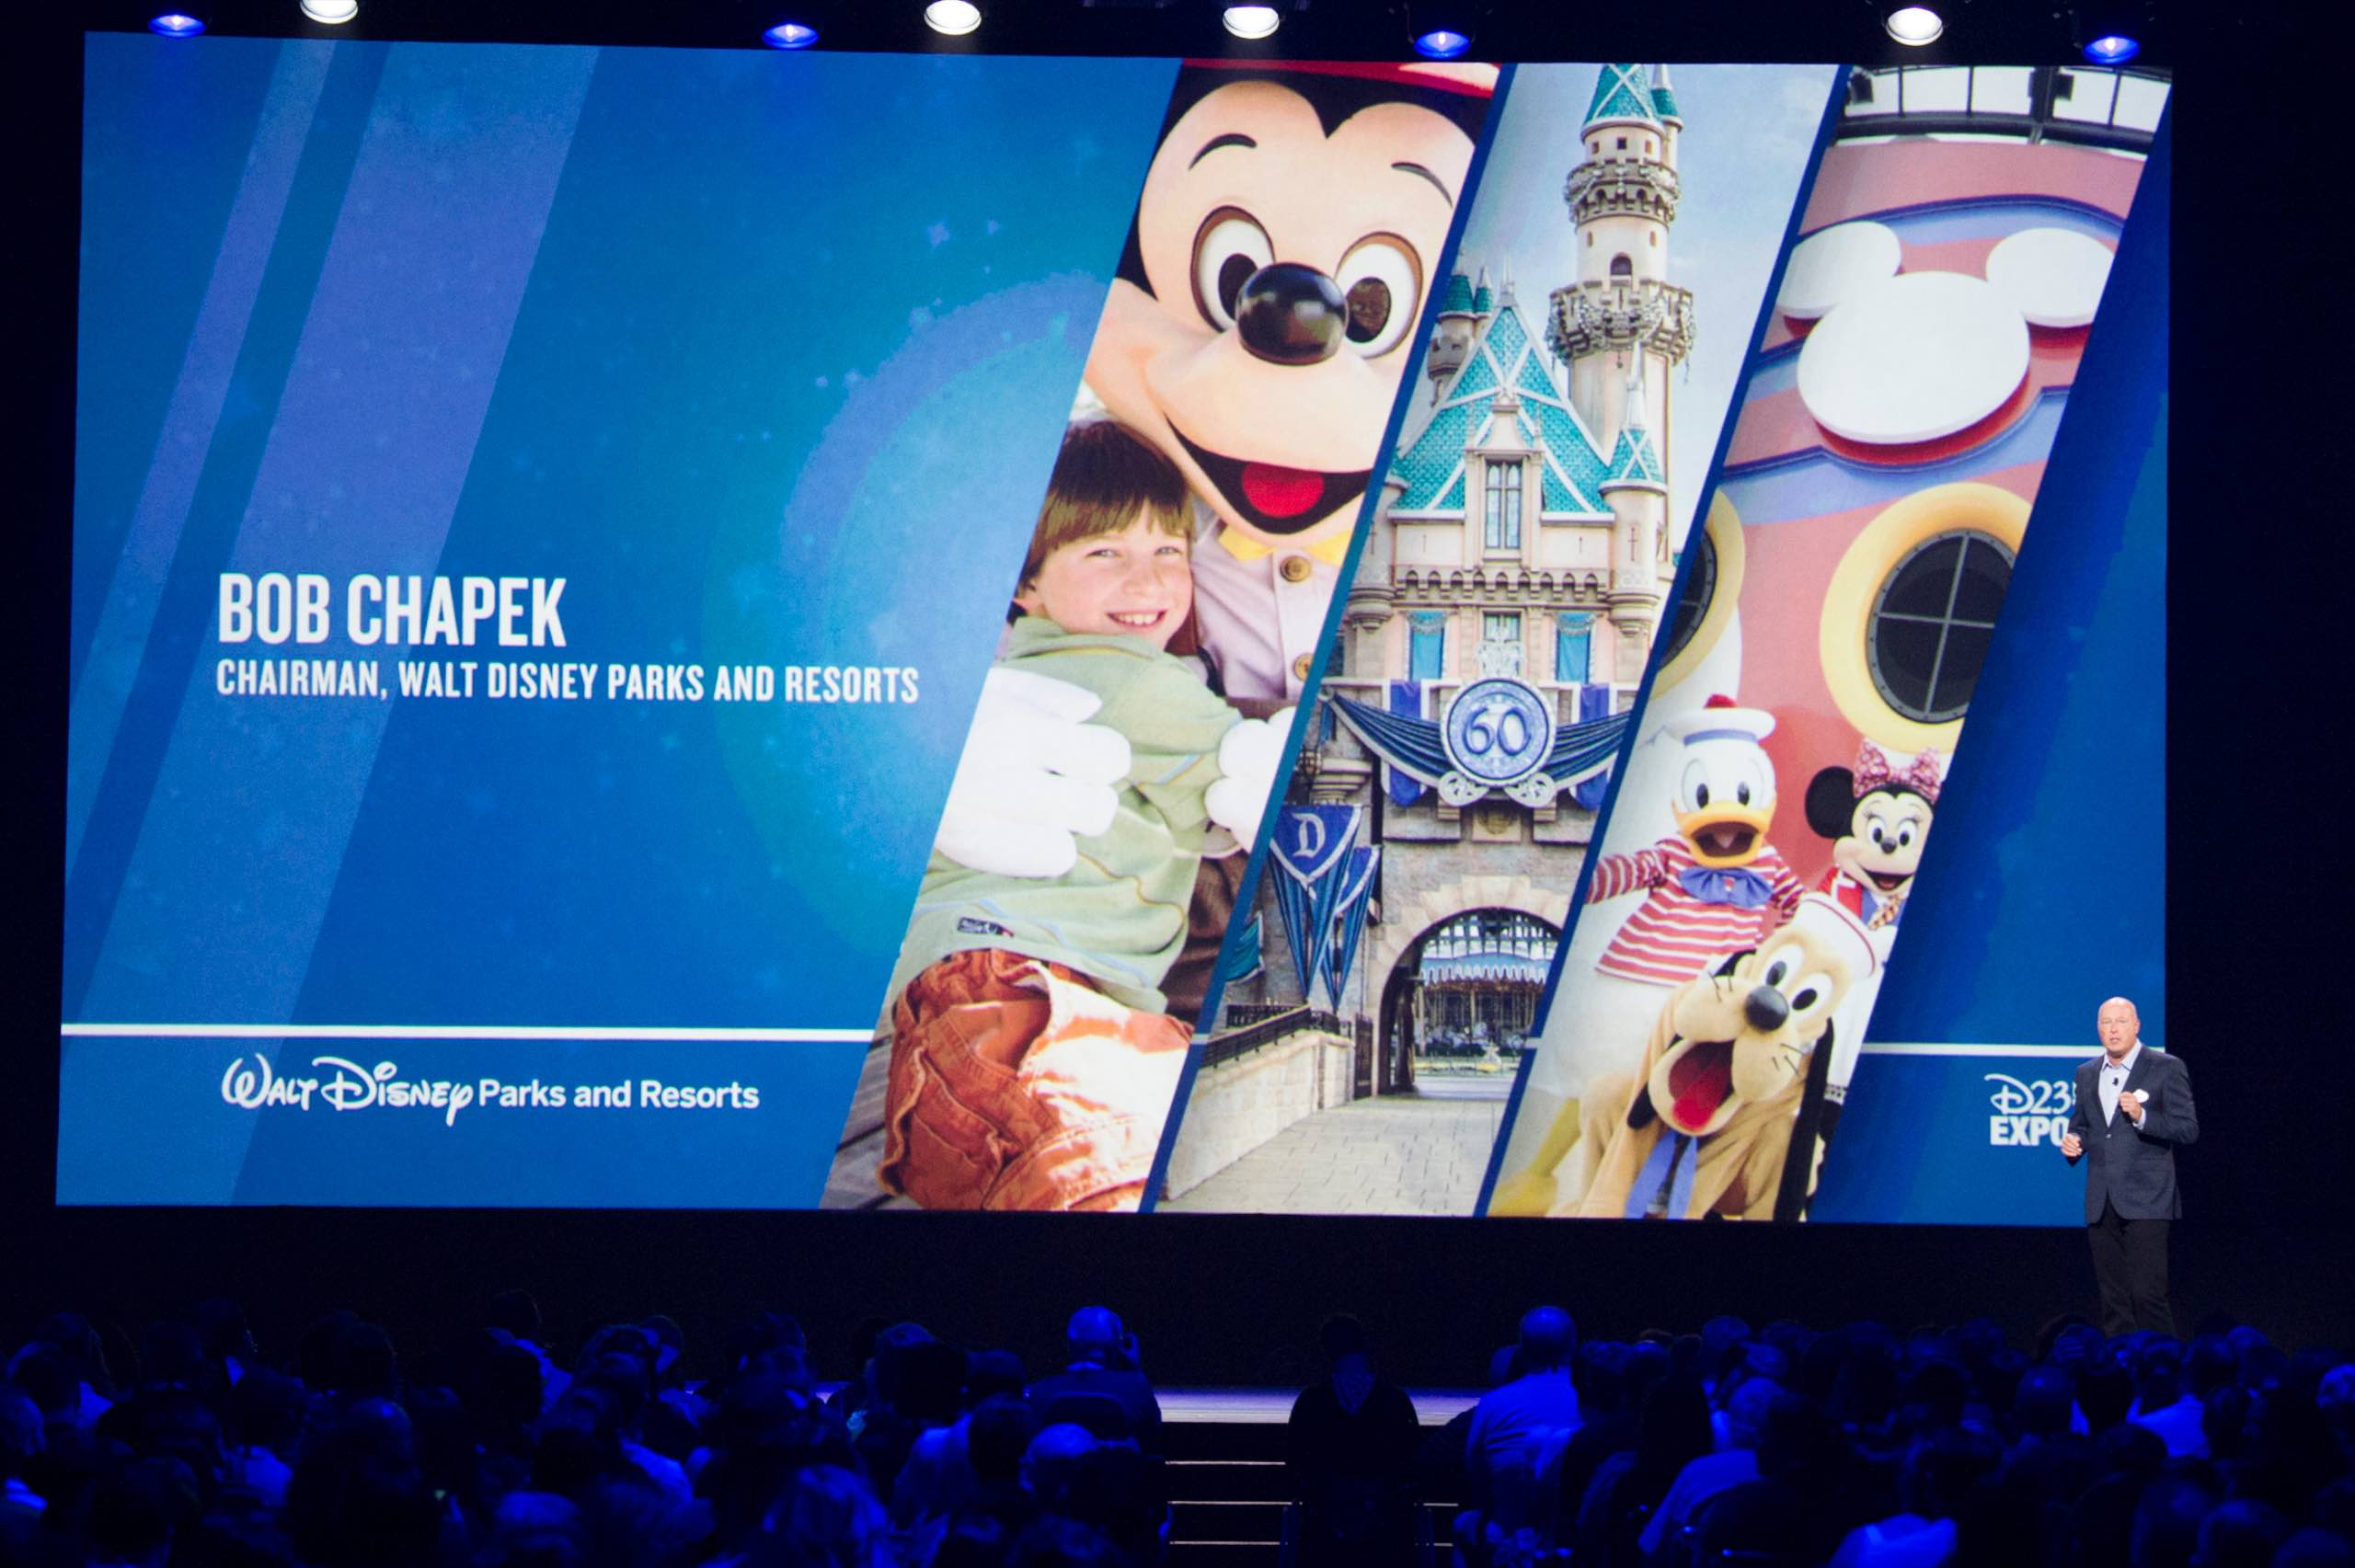 Our predictions for 2019 D23 Expo announcements and what